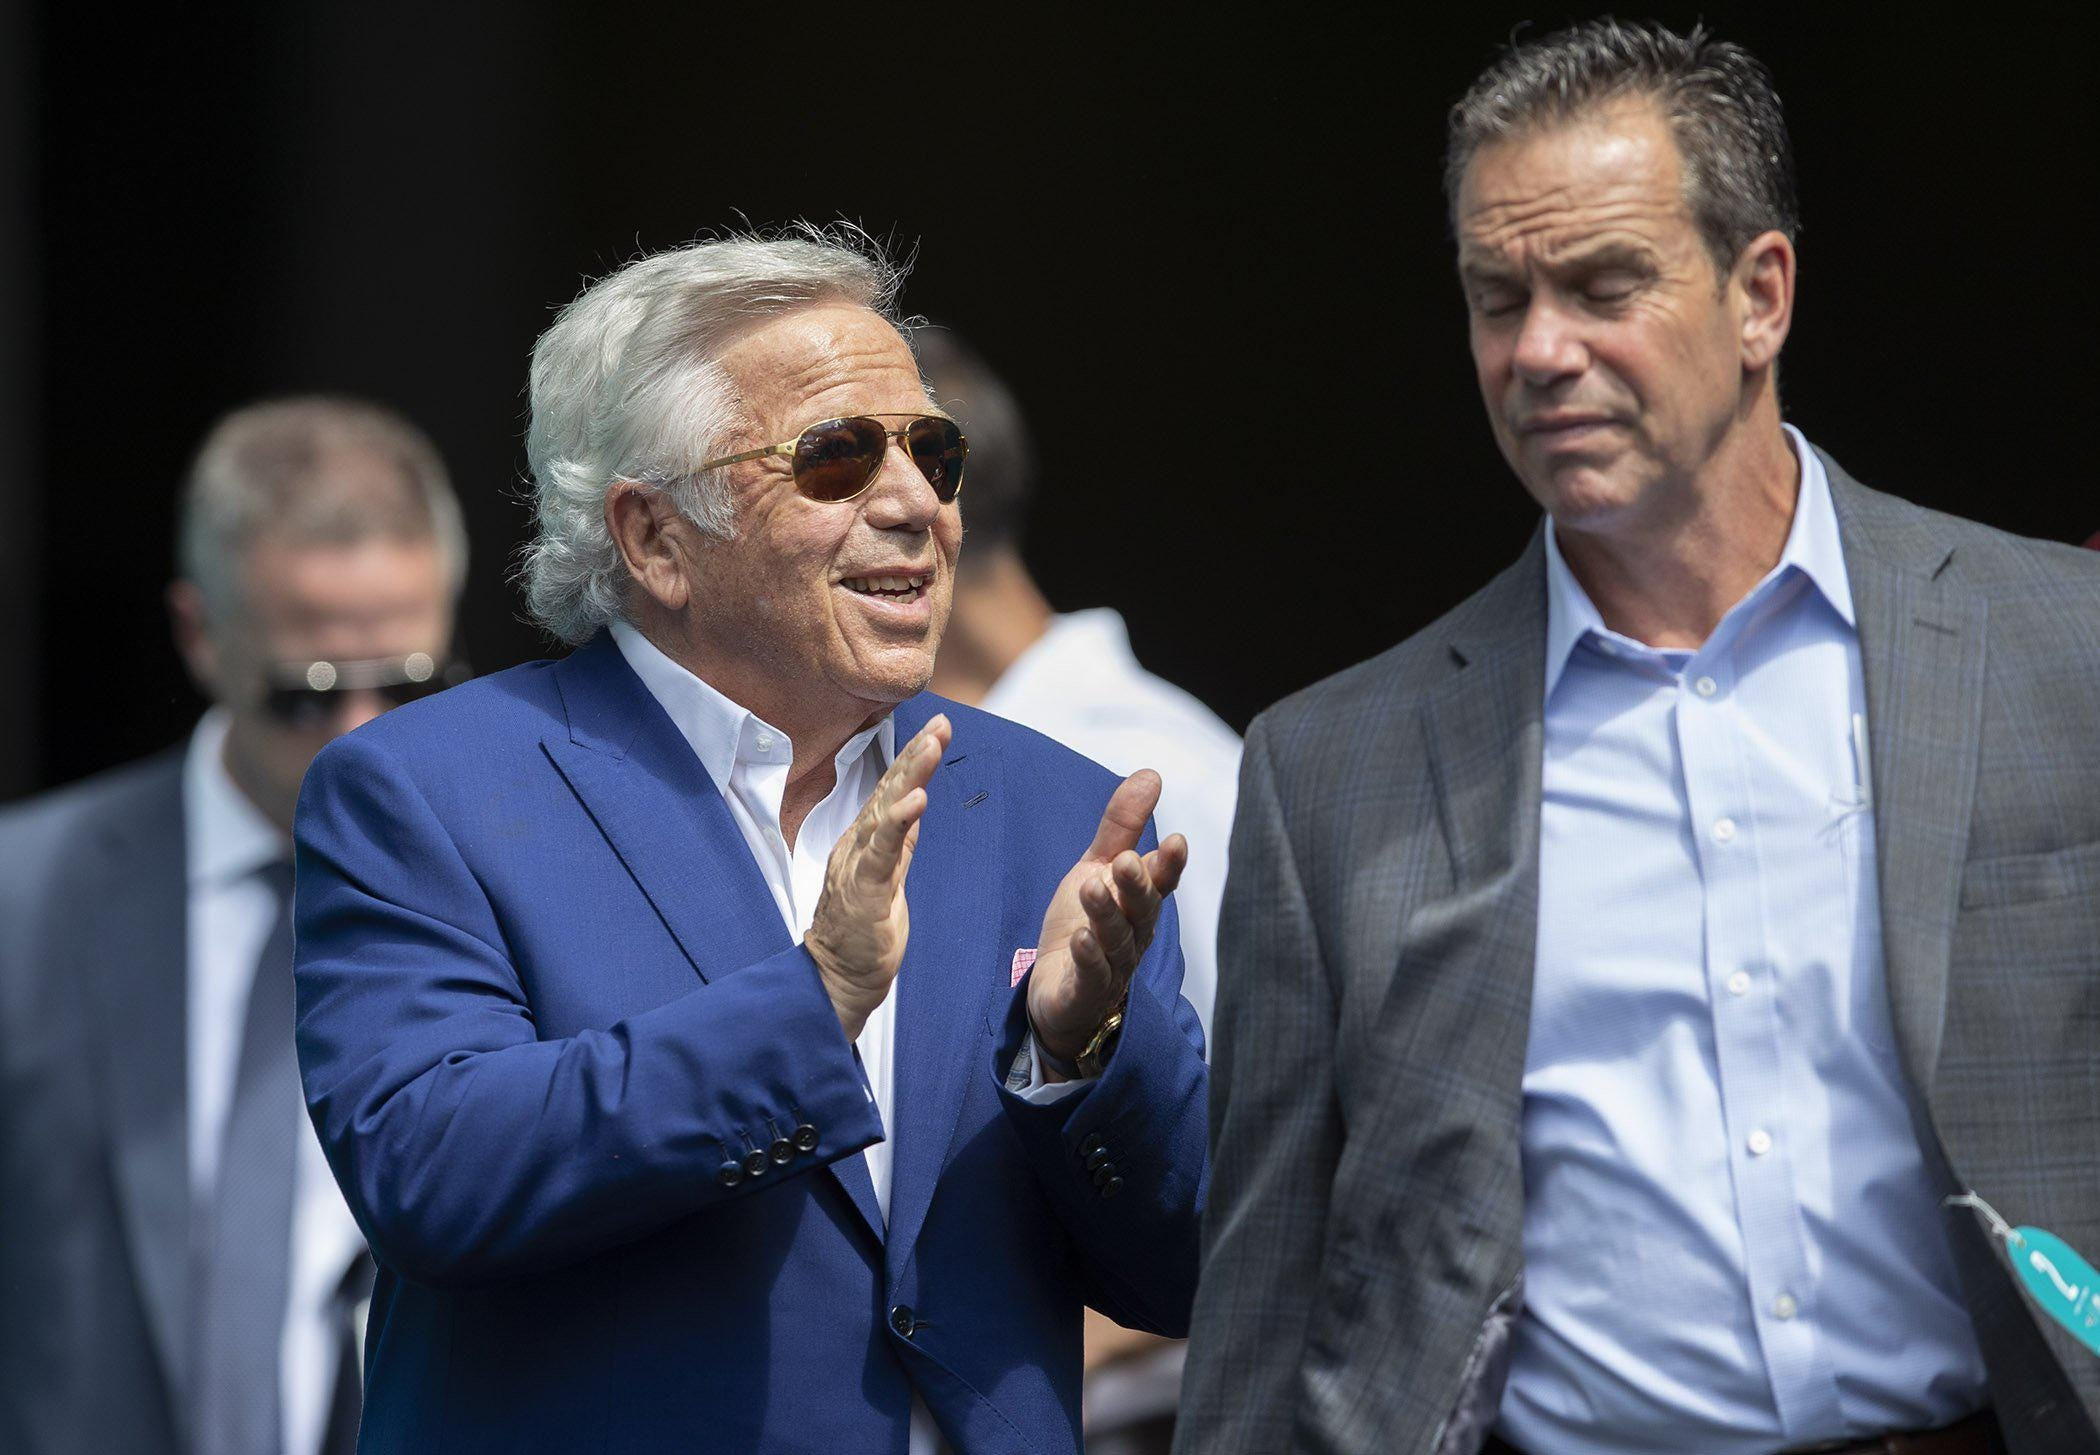 New England Patriots owner Robert Kraft has charges dropped in Florida prostitution sting